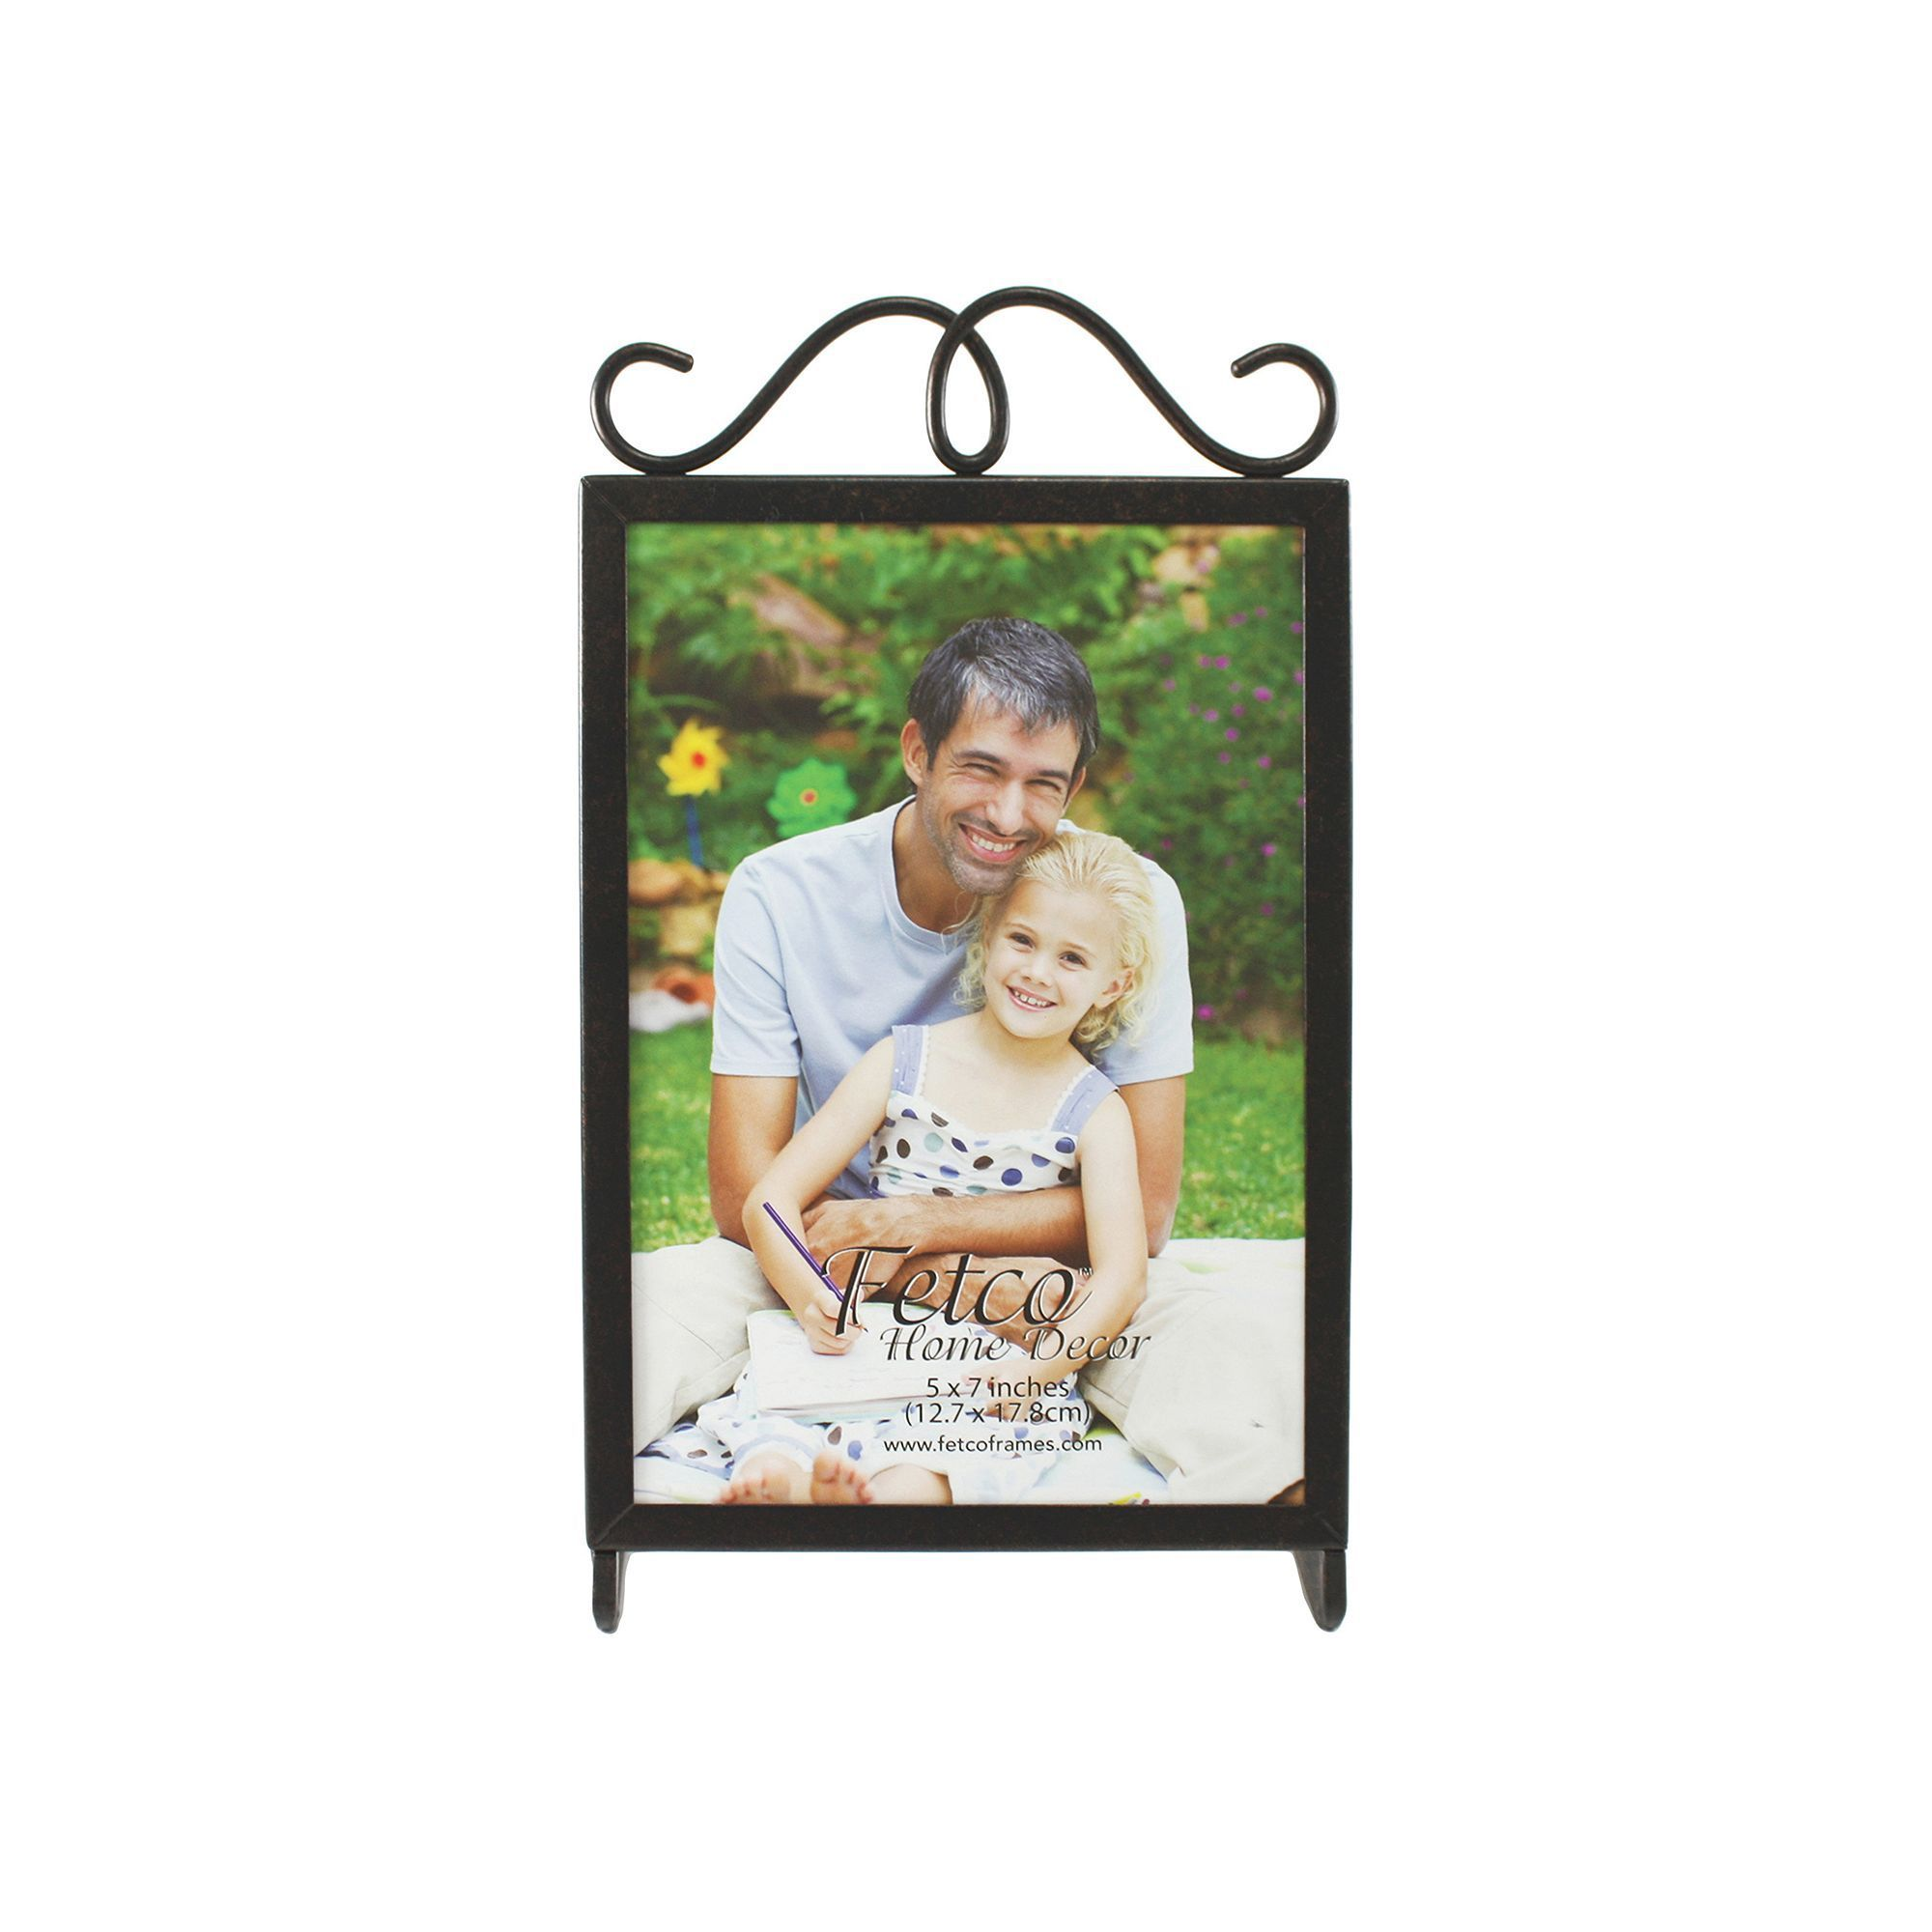 Fetco home decor wisler 5 x 7 frame other clrs products fetco home decor wisler 5 x 7 frame jeuxipadfo Gallery